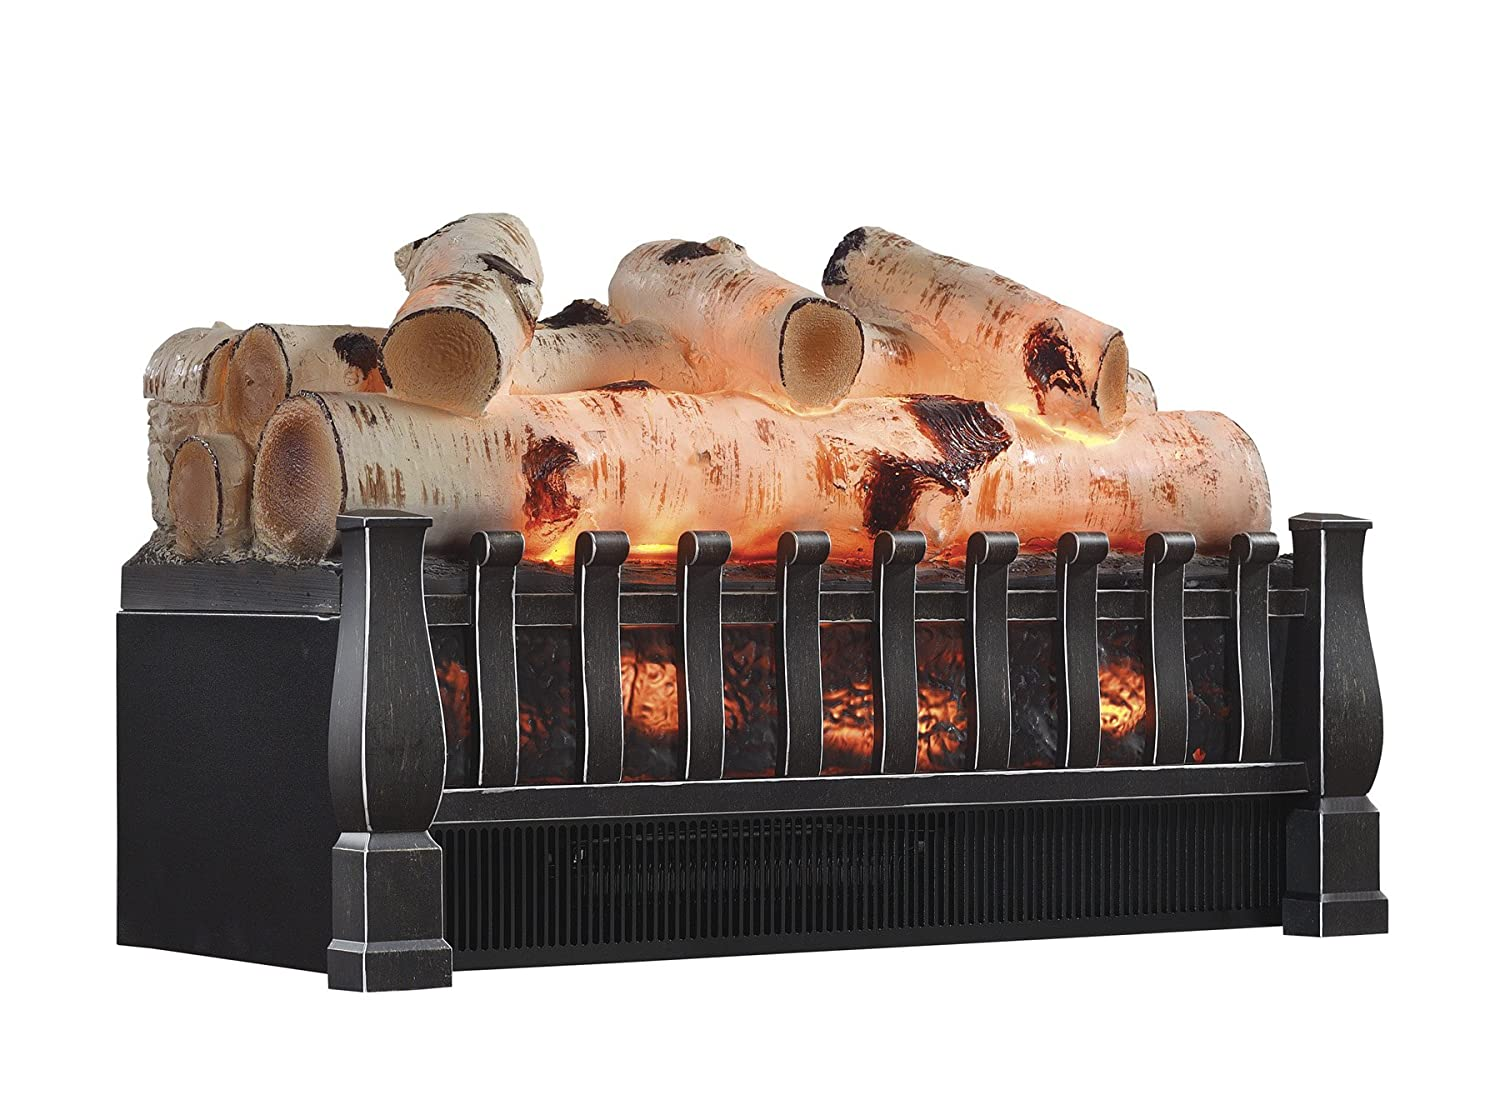 Pleasant Hearth 20-in Electric Fireplace Log Set w/ Crackling Sound - L-20W